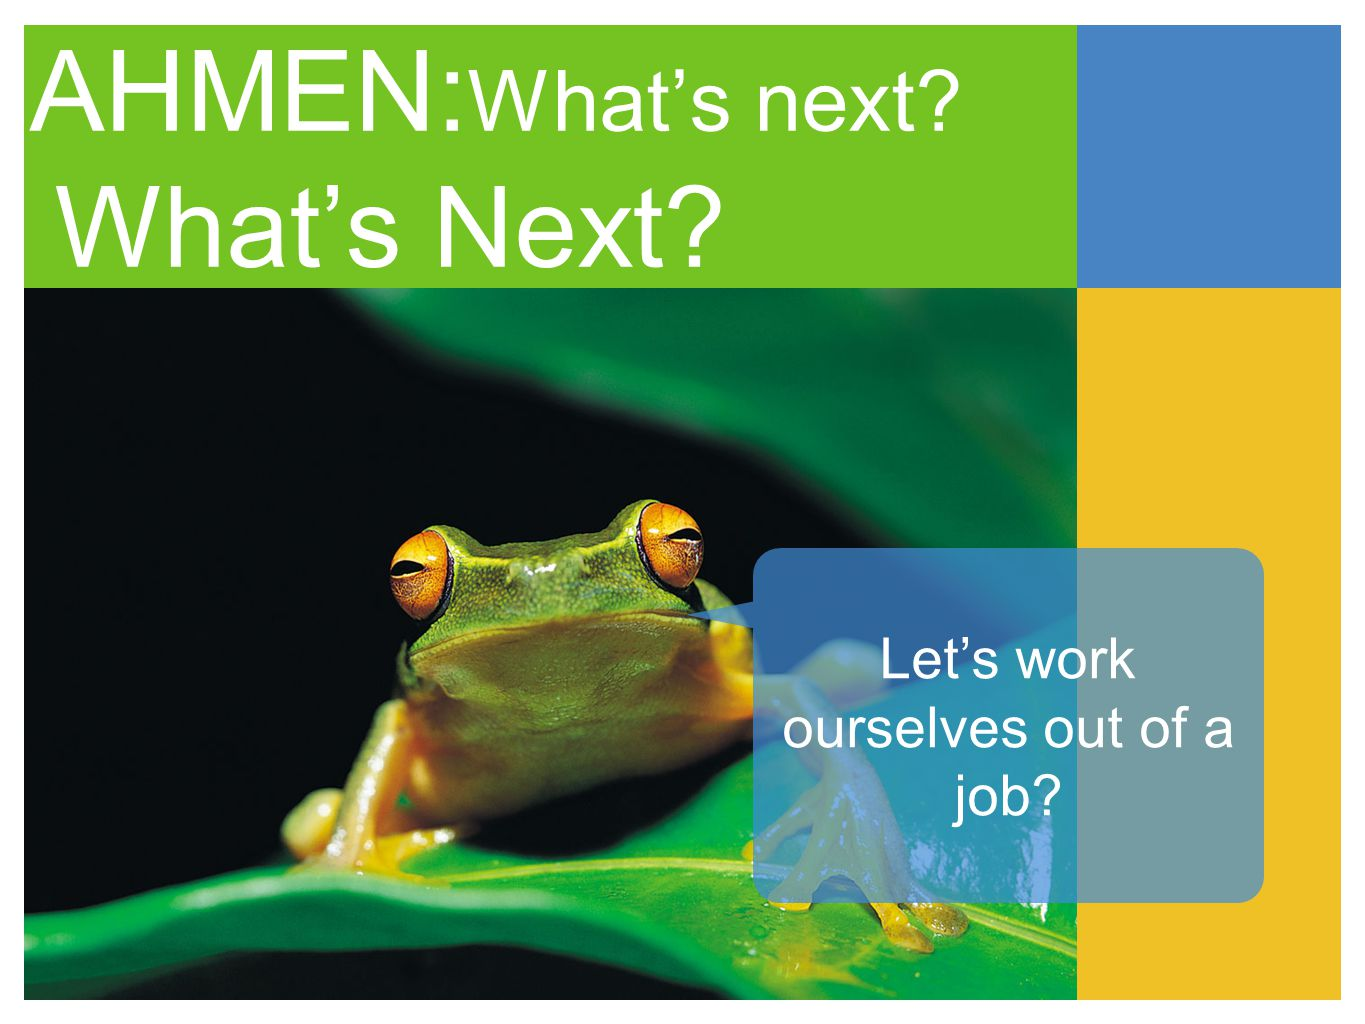 AHMEN: Whats next? Whats Next? Lets work ourselves out of a job?